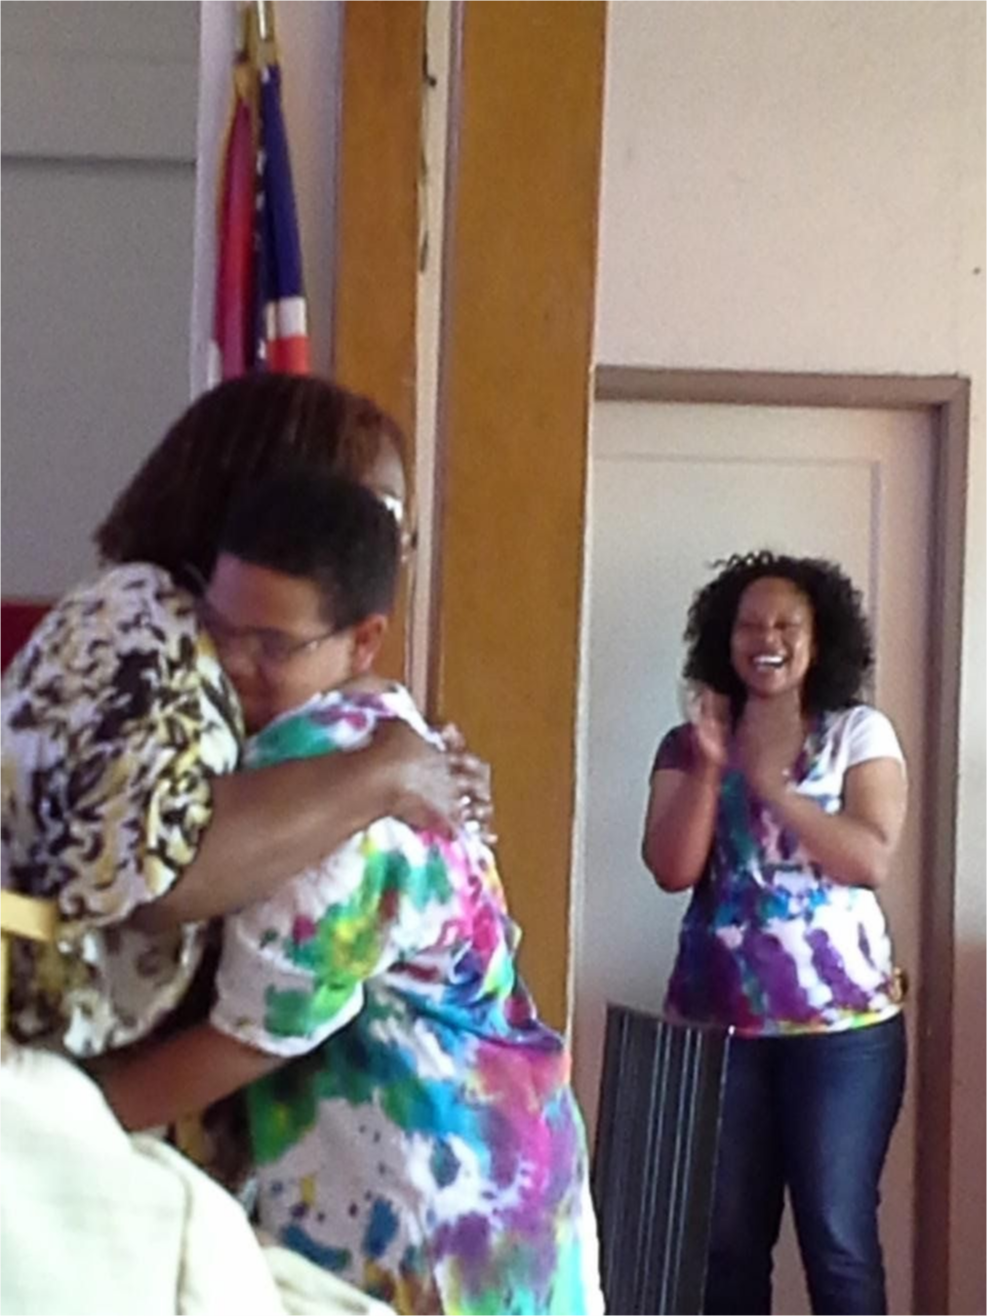 A student receives encouragement from Teachers.